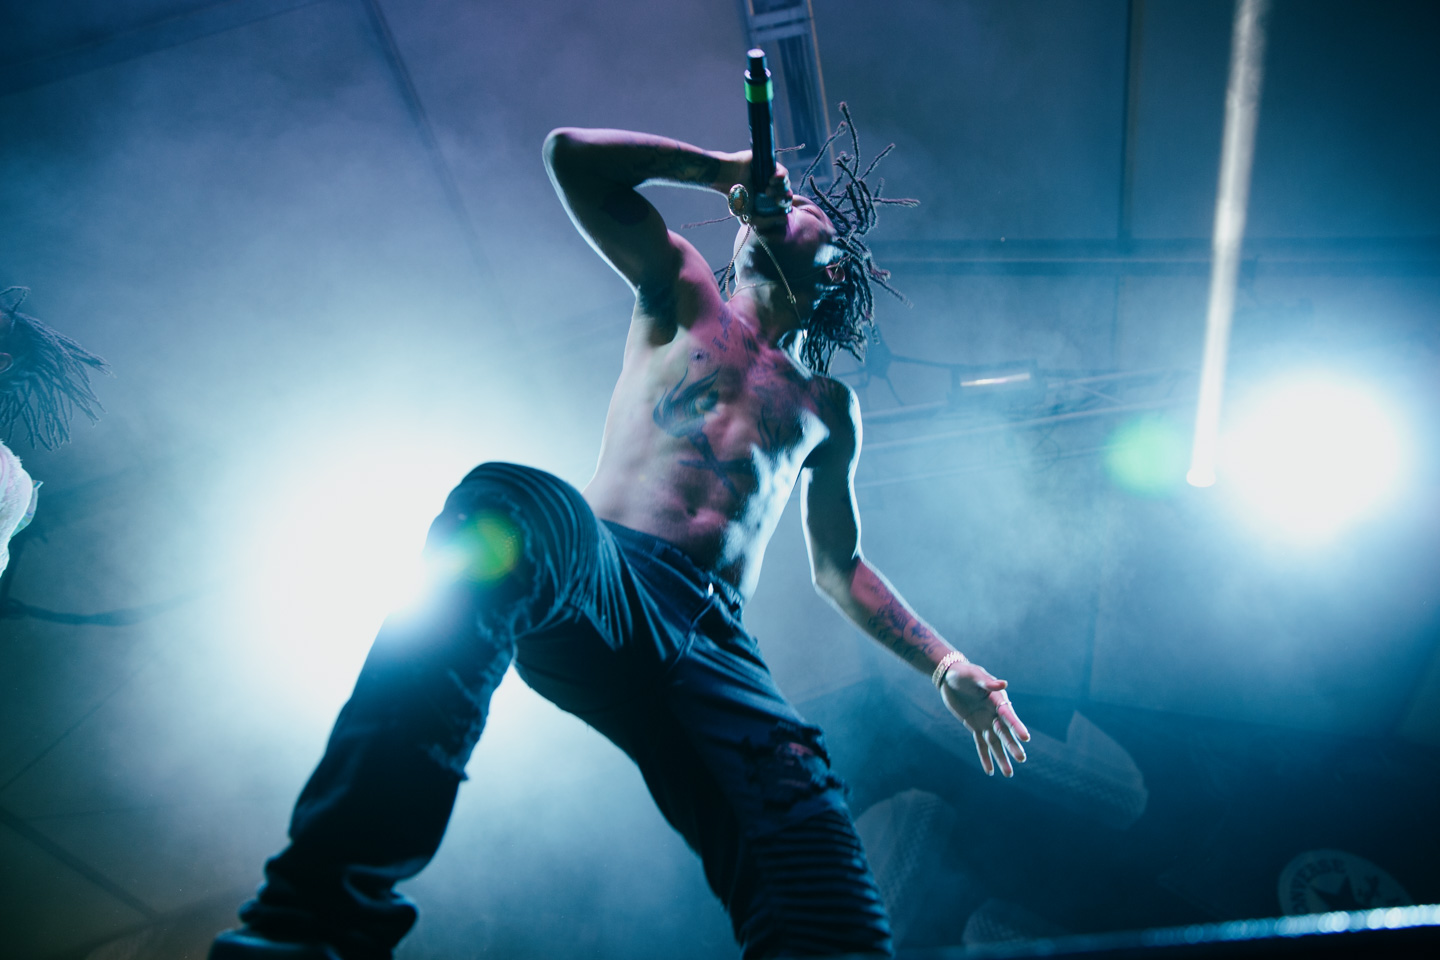 Rae Sremmurd at Fader Fort